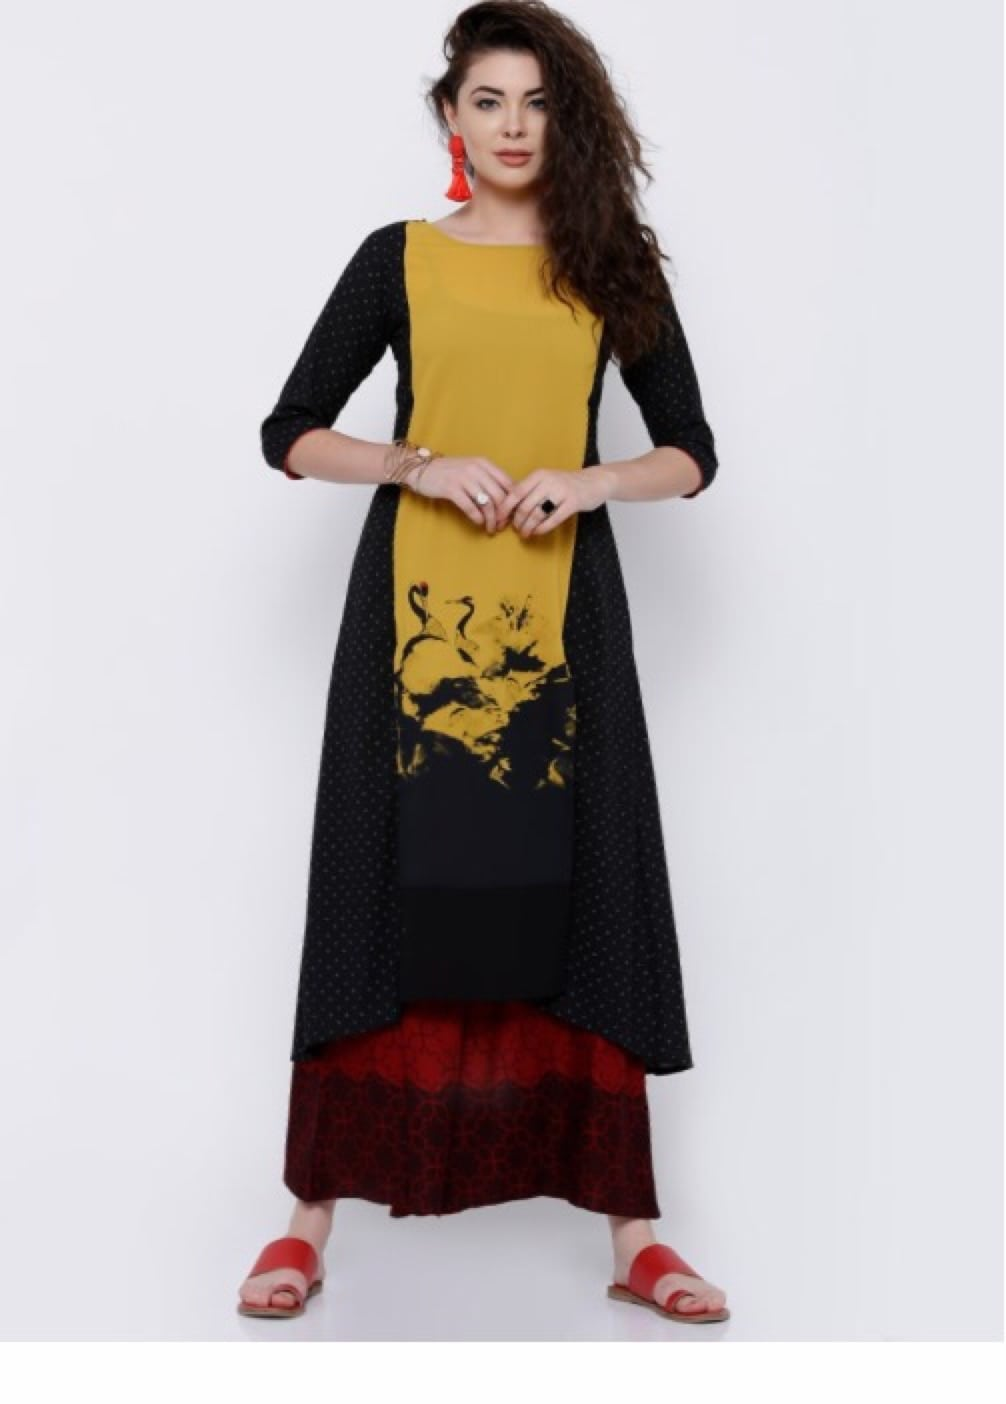 Flat 50% off ₹576 only             #discountedrates #discount  #kurta #kurtisforwomen #kurtionlineshopping #kurtistyles #kurtis designer kurti indowestern kurti new designe kurti summer collection  #indowesternwear